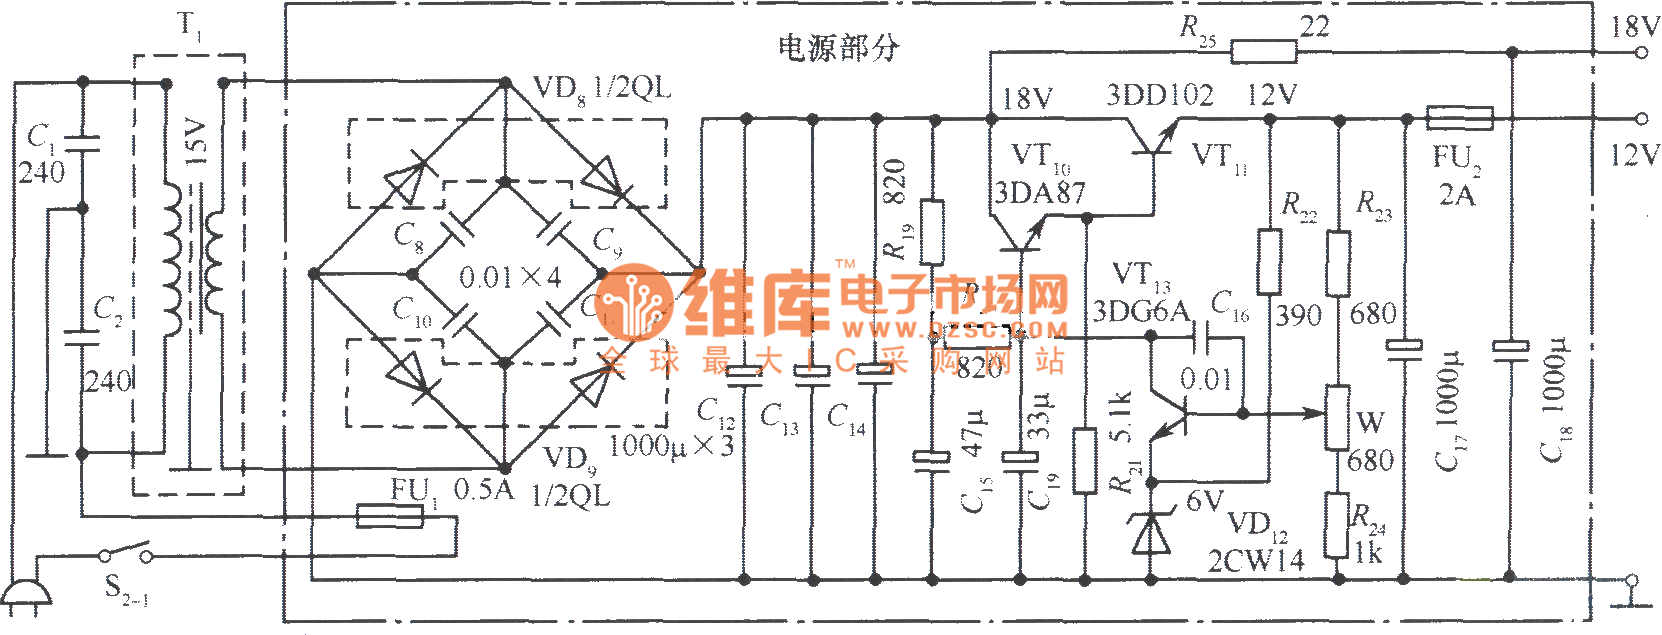 18v Power Supply Schematic, 18v, Free Engine Image For